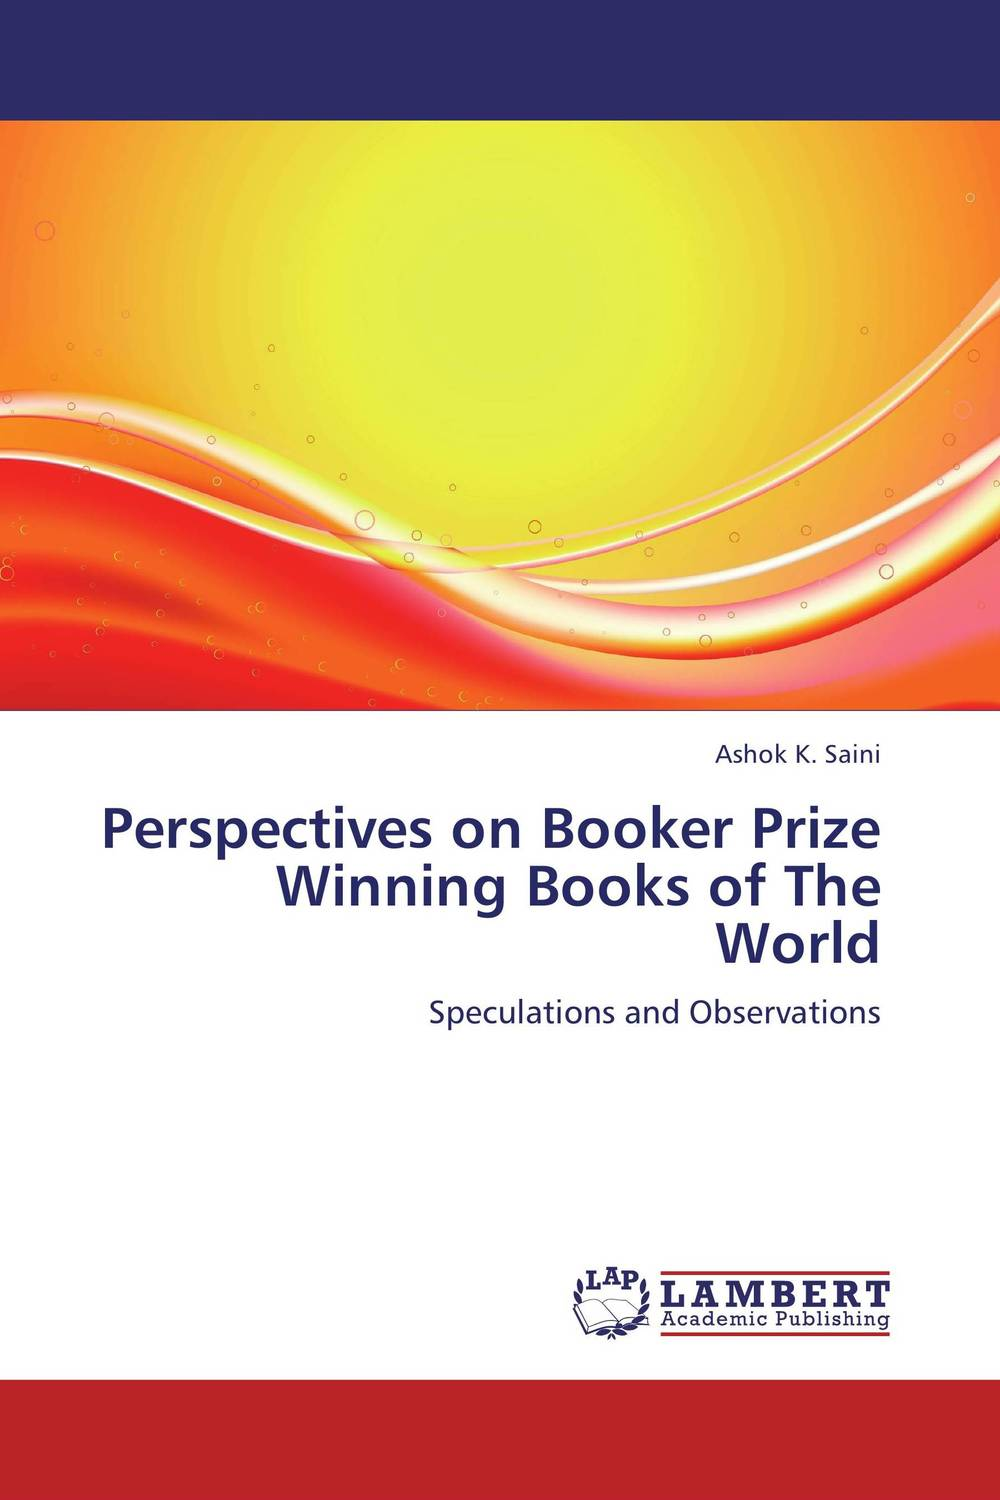 Perspectives on Booker Prize Winning Books of The World renu addlakha contemporary perspectives on disability in india